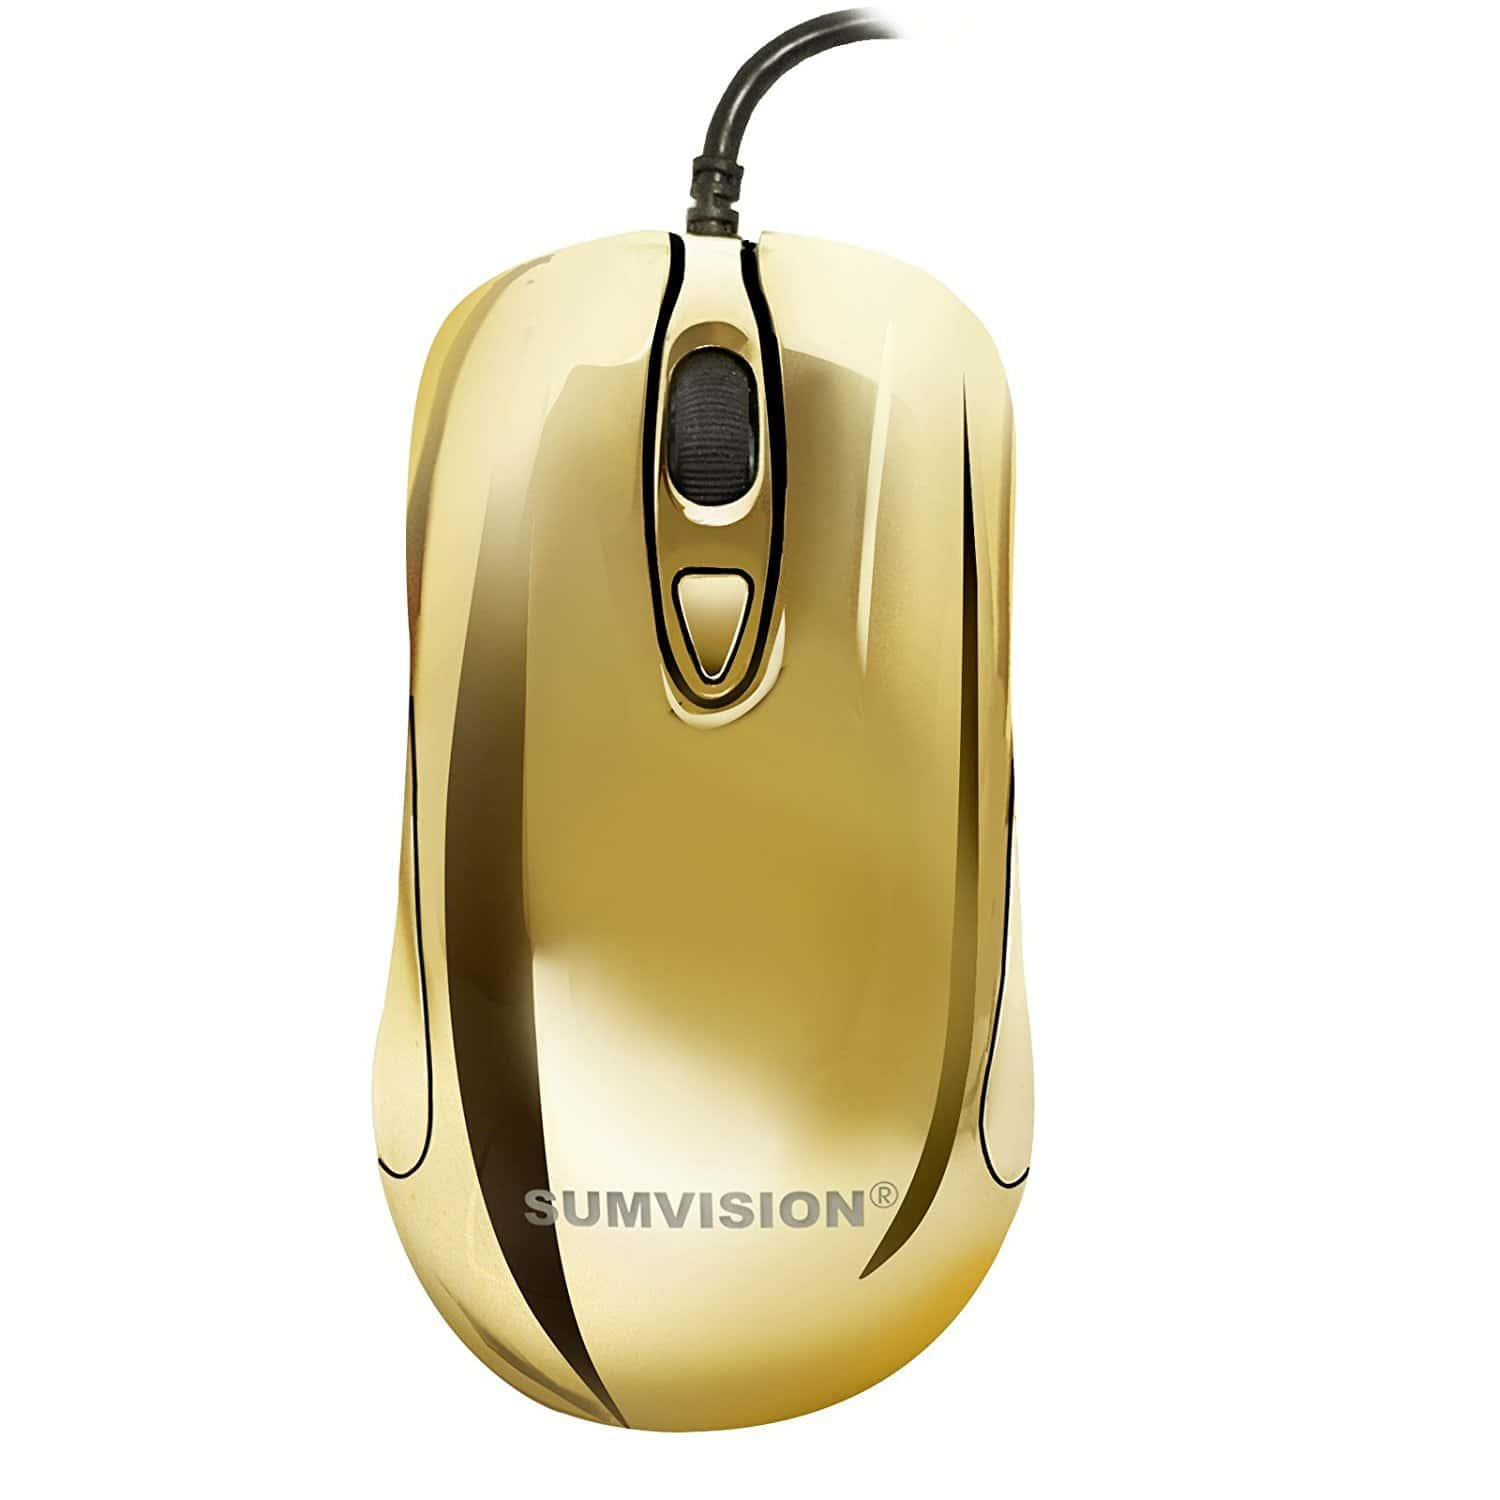 Sumvision Plasma Golden 6 LED Electroplated gaming mouse